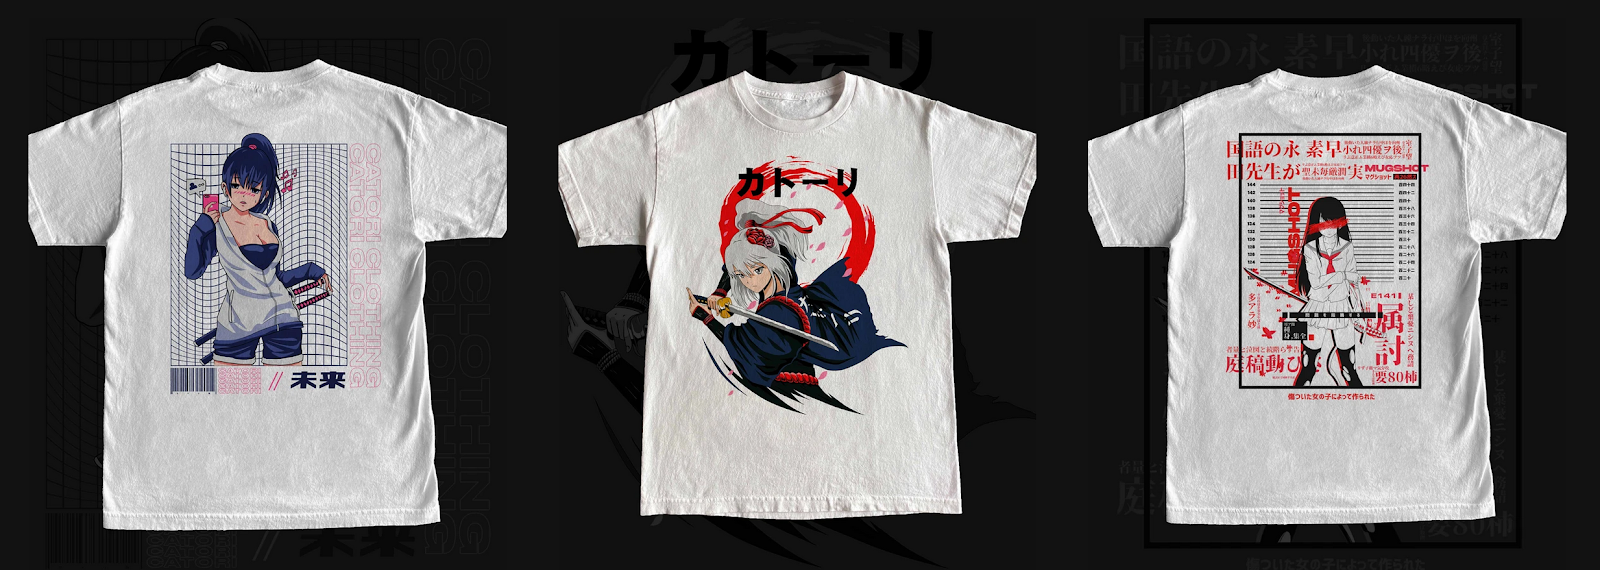 Catori Clothing - Fun Anime Streetwear   Brand Collab Opps for Fashion Influencers